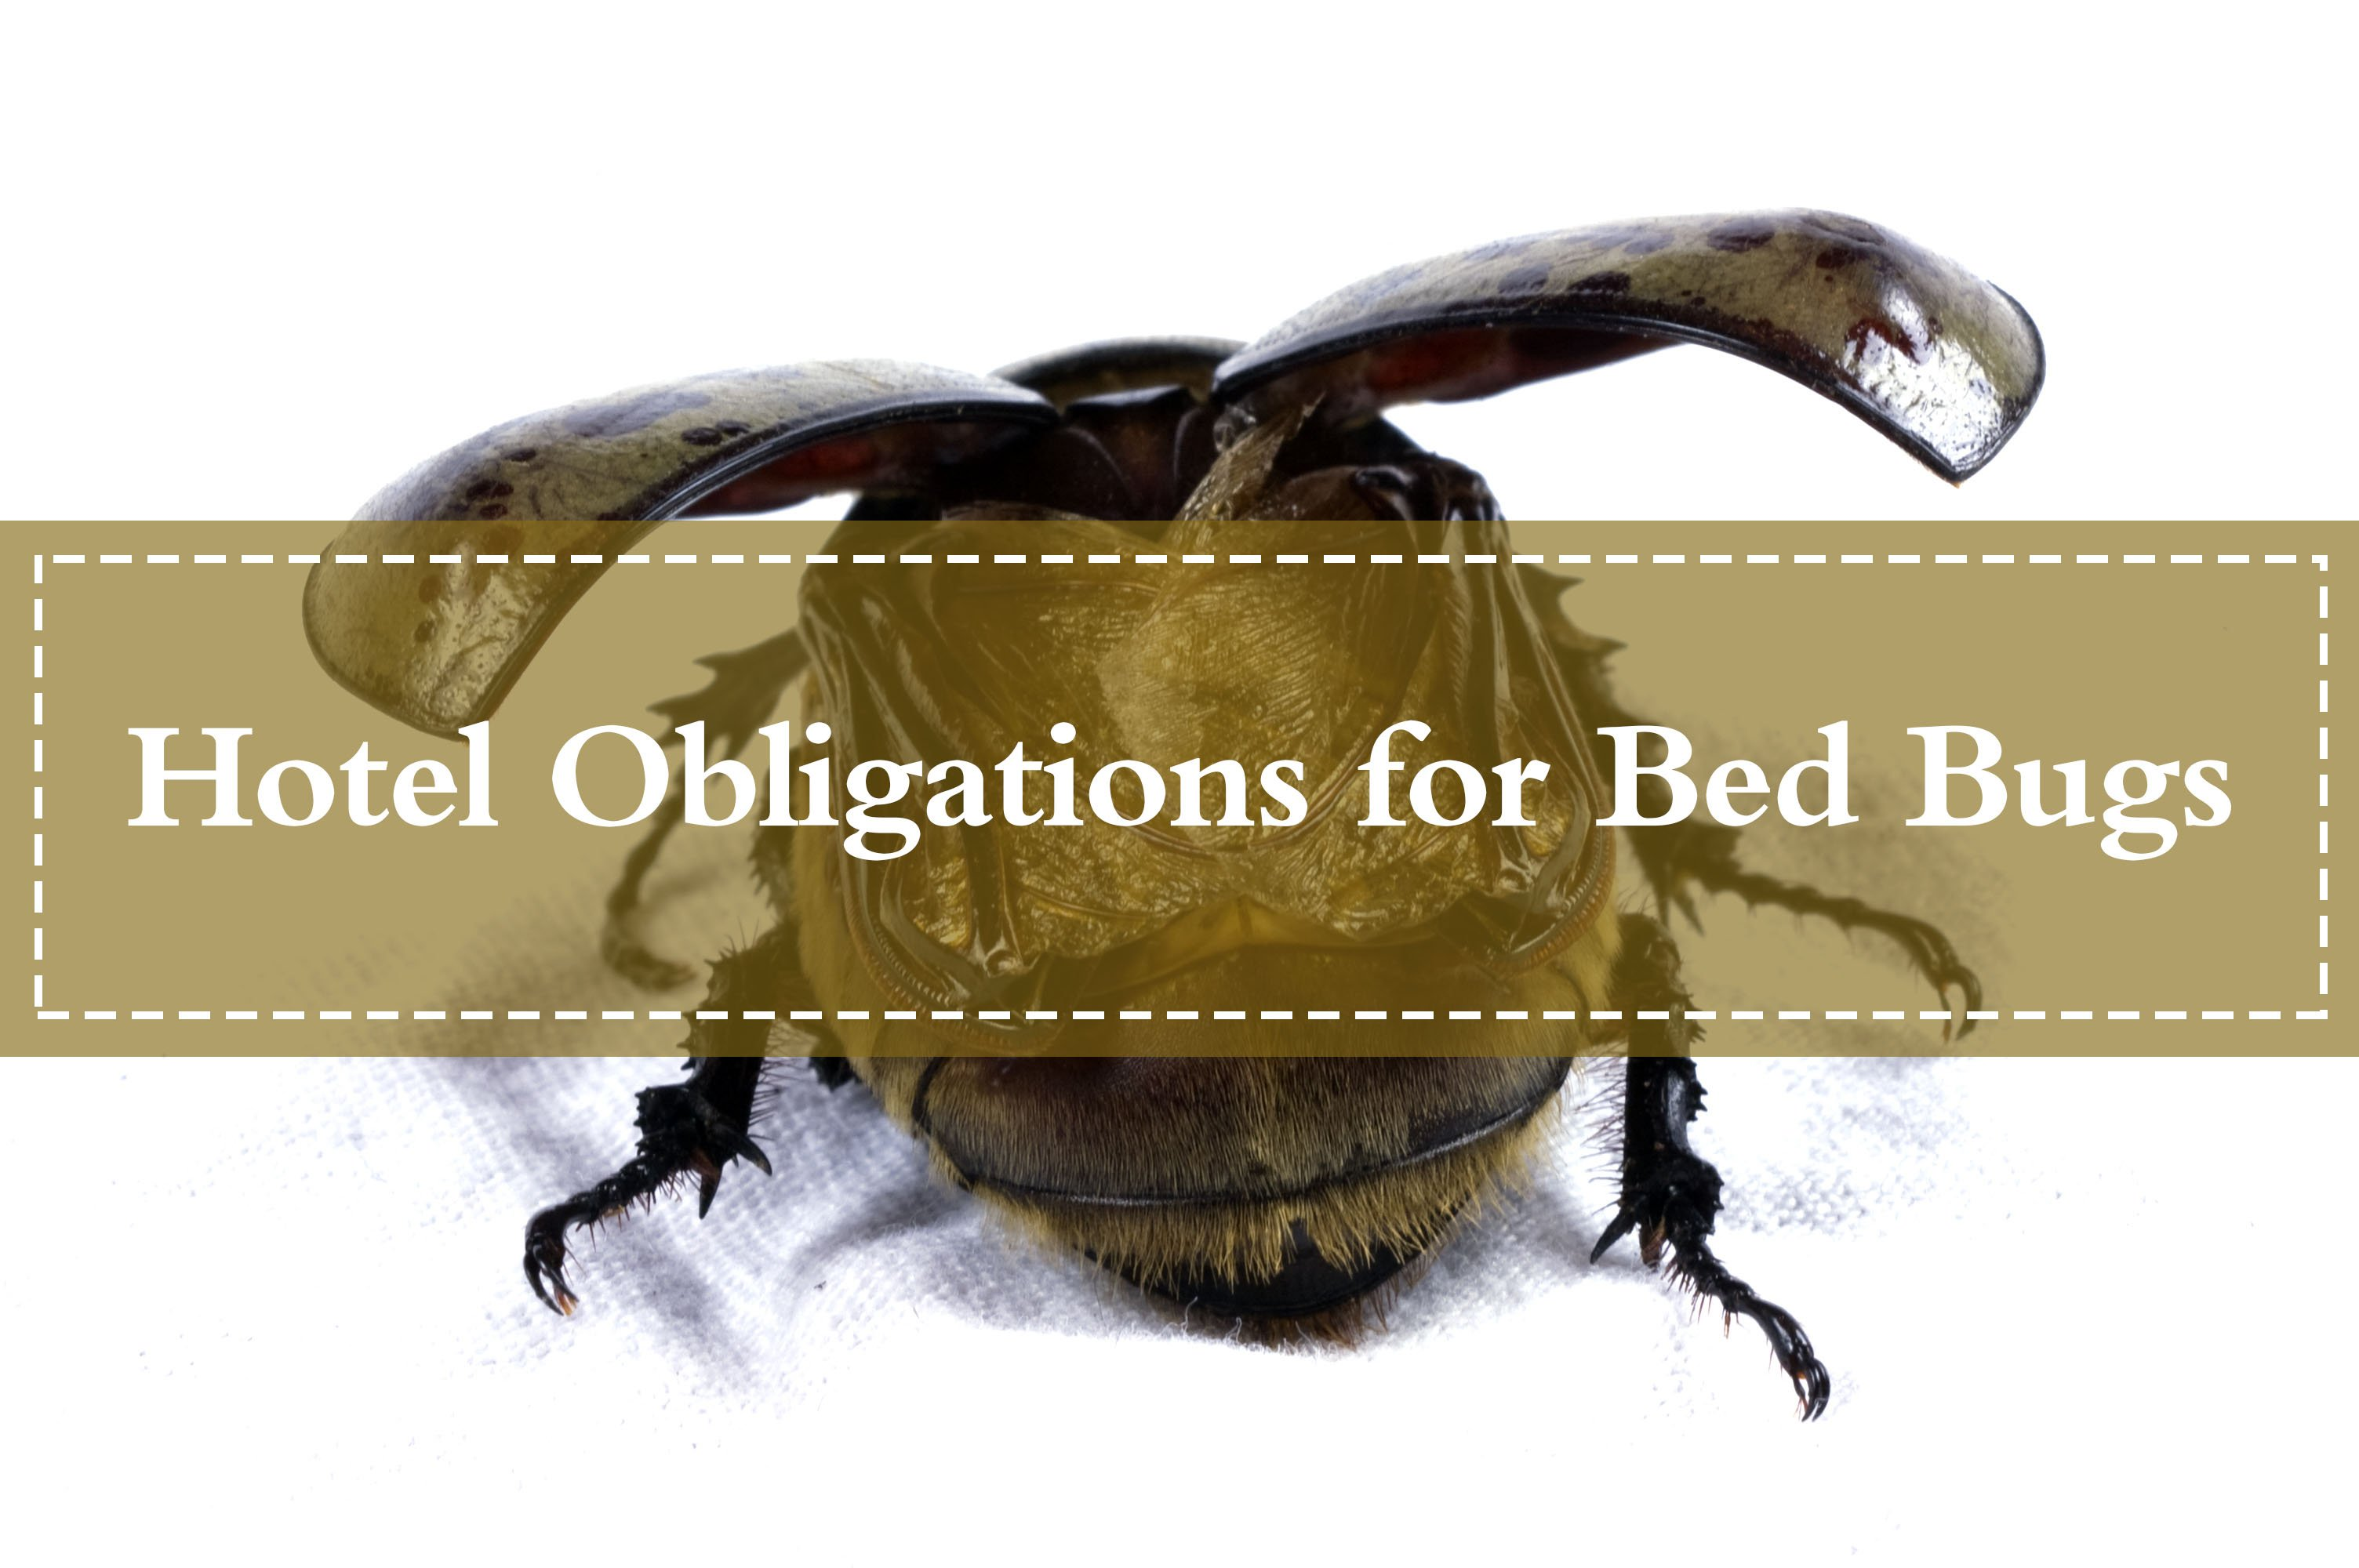 Hotel Bed Bug Compensation (Refund): What Rights Do You Have? - Pest